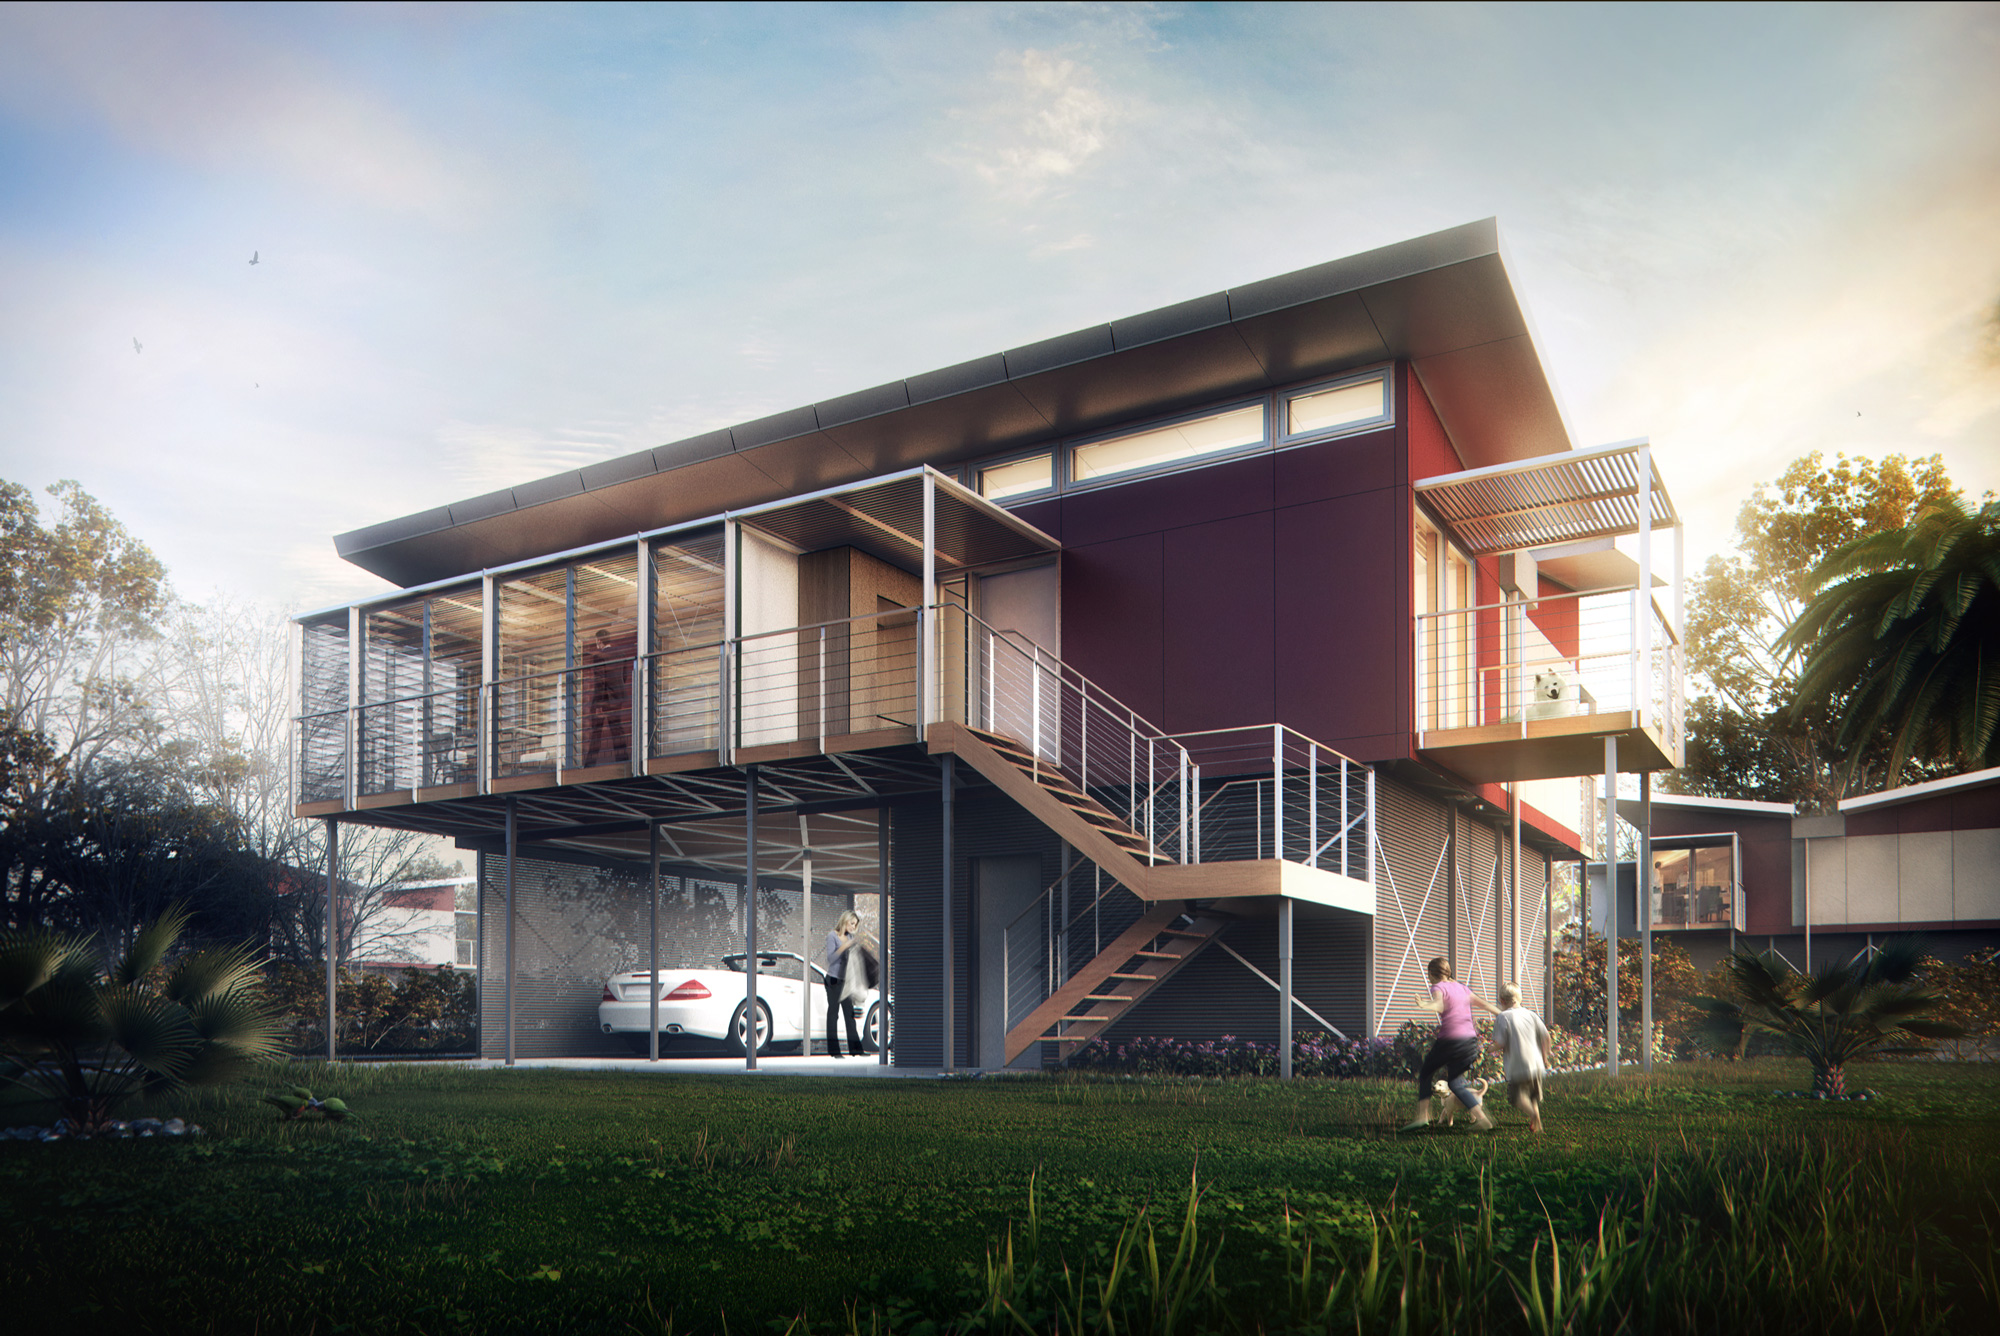 3d visualization kiribati house architectural - 3d architectural visualization ...